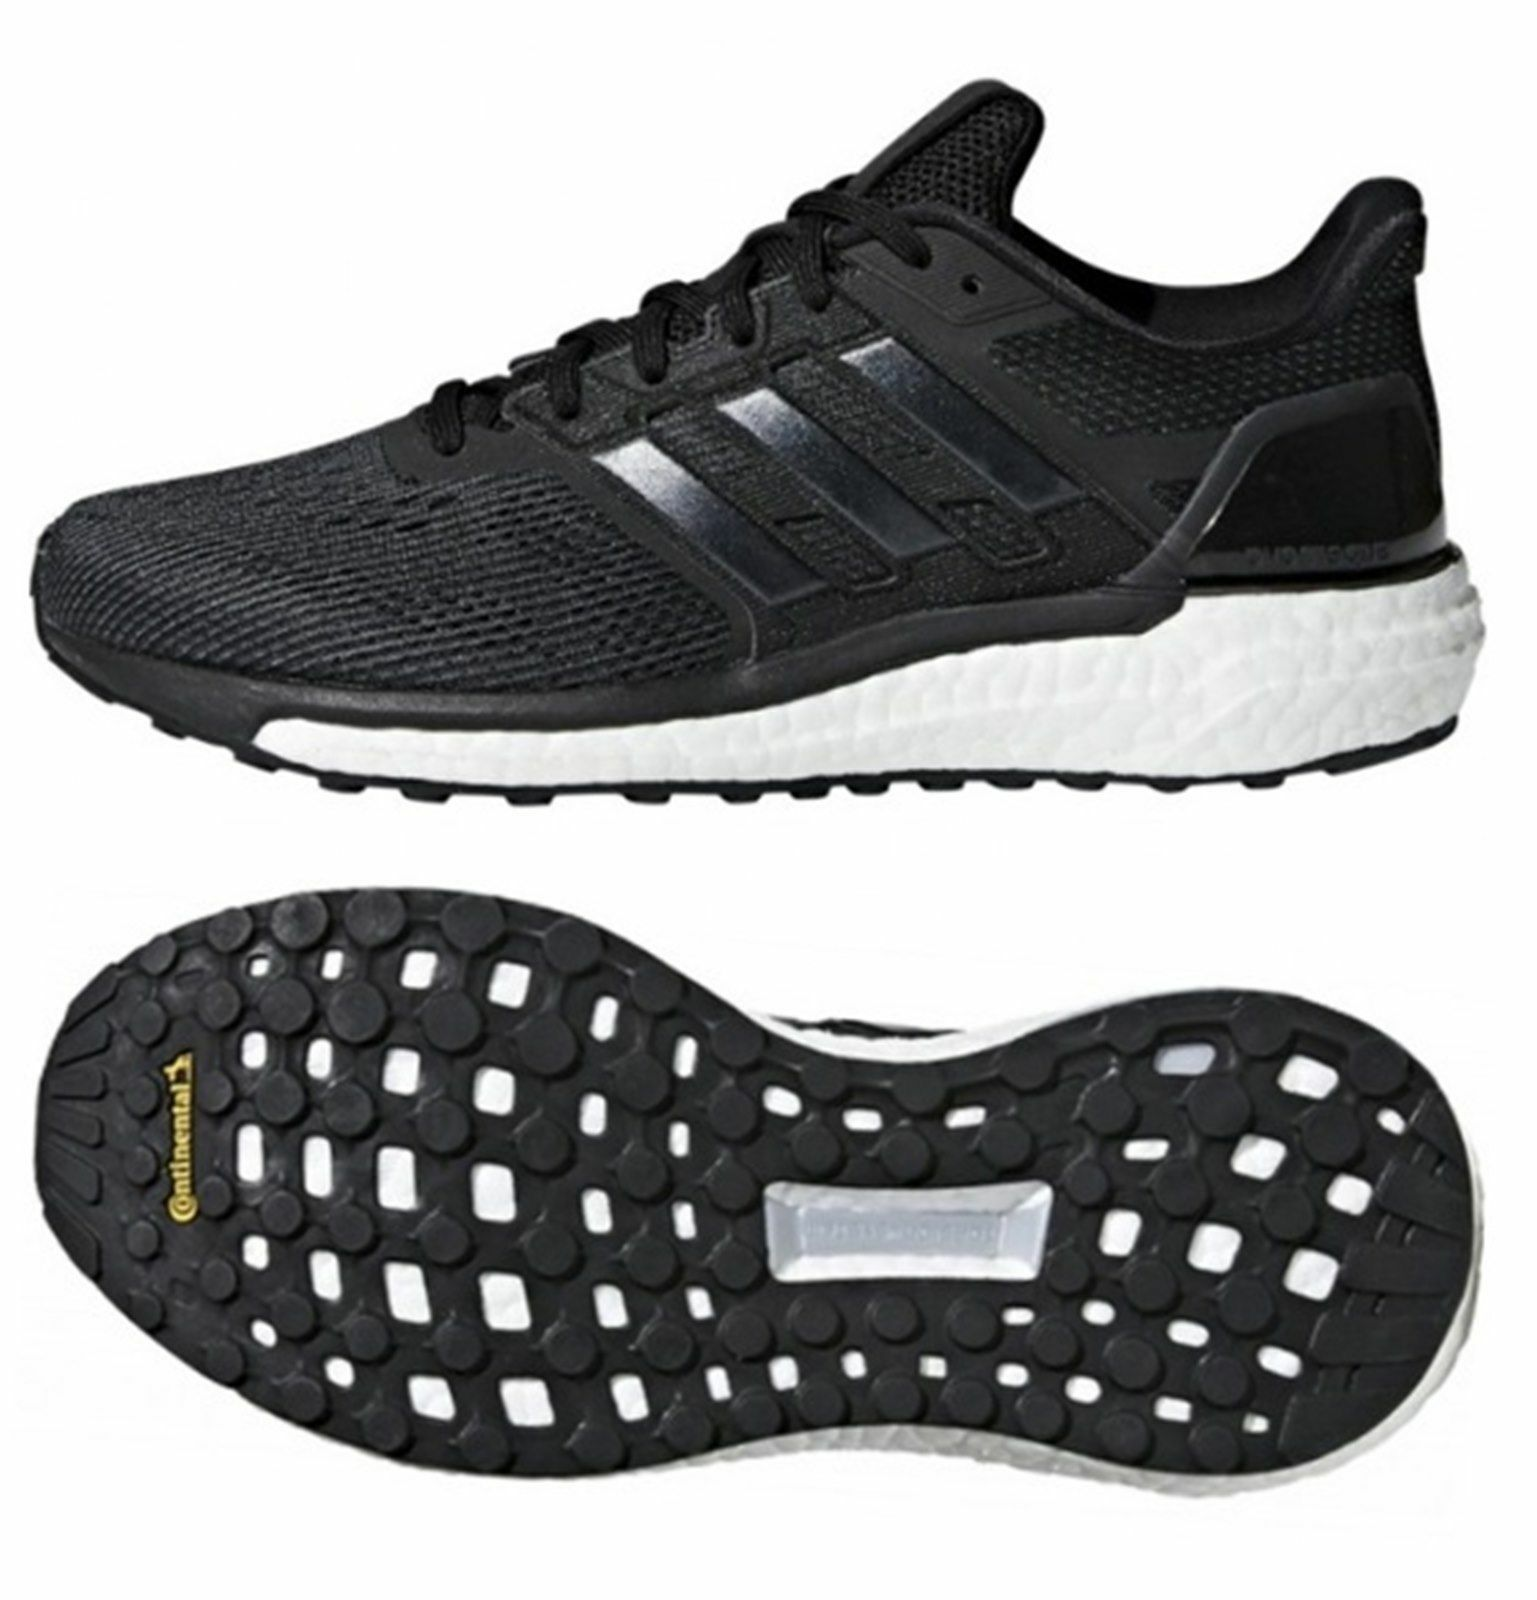 Supernova Nero Donna Running Adidas Training Shoes qwvdfH